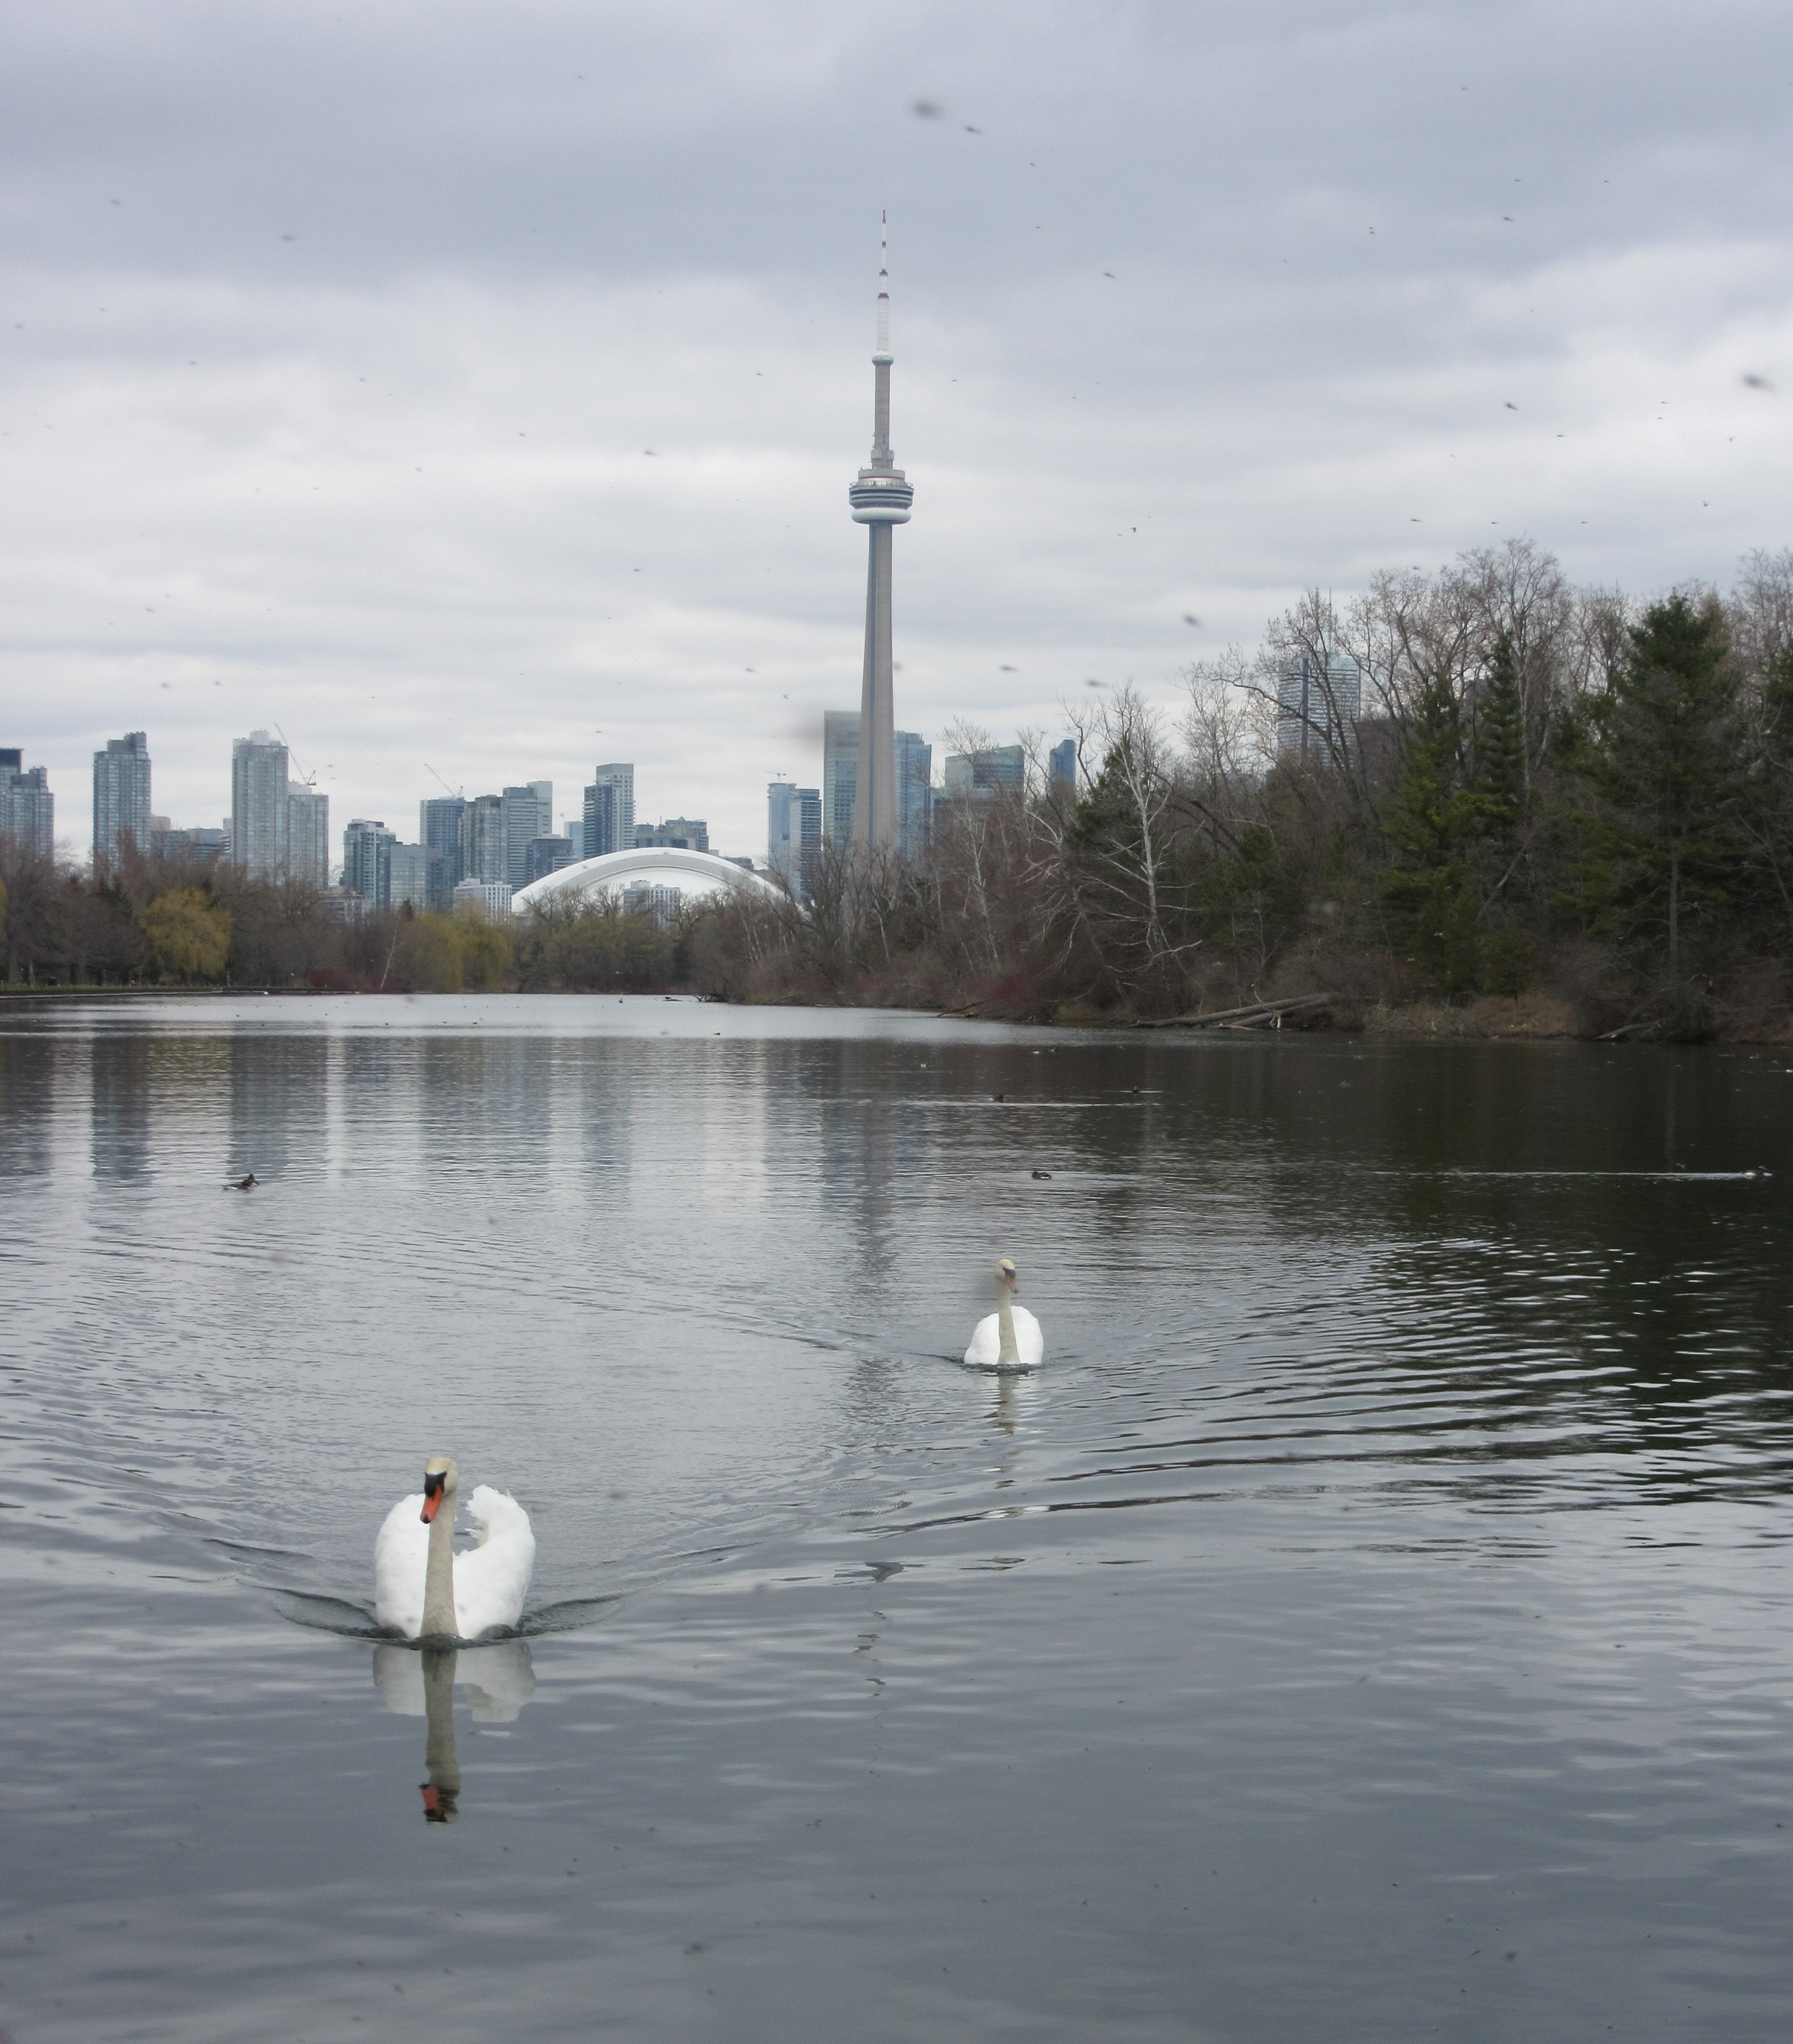 Swans and the Toronto Skyline